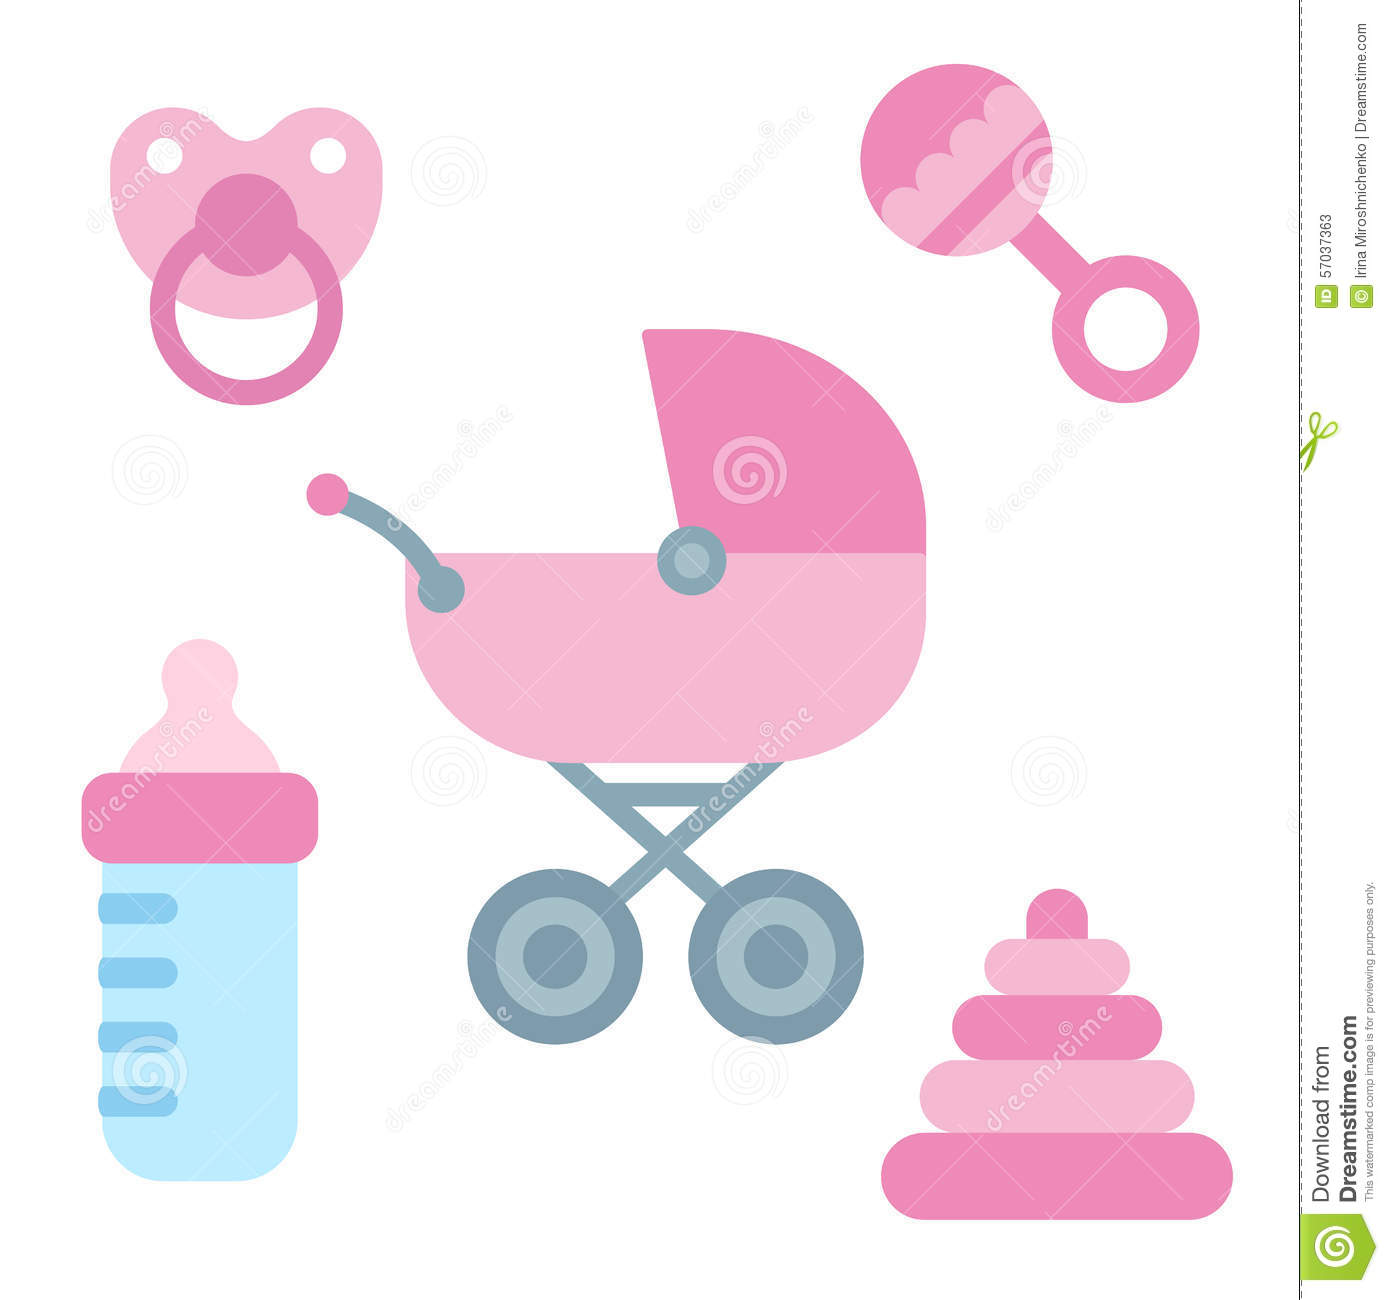 Baby Items Stock Vector - Image: 57037363